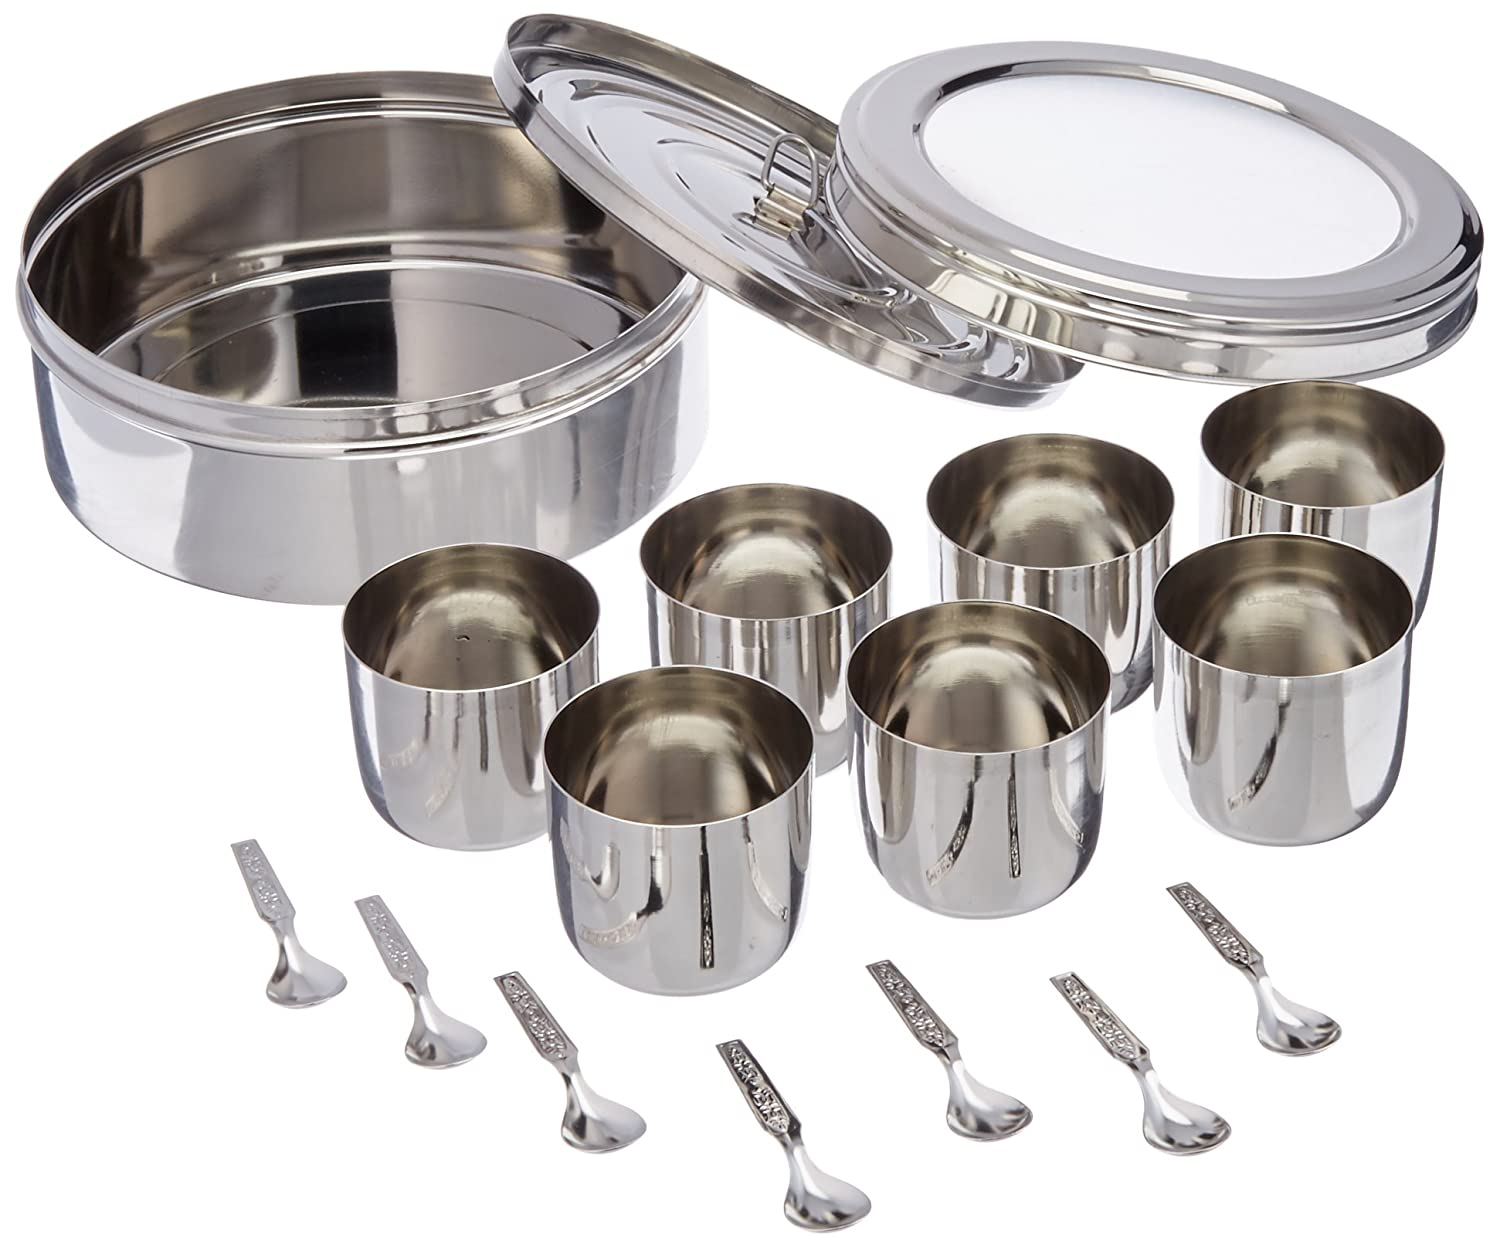 Tabakh Spice Container Masala Dabba - 7 Spoons - Clear Lid (Stainless Steel) MD-AC